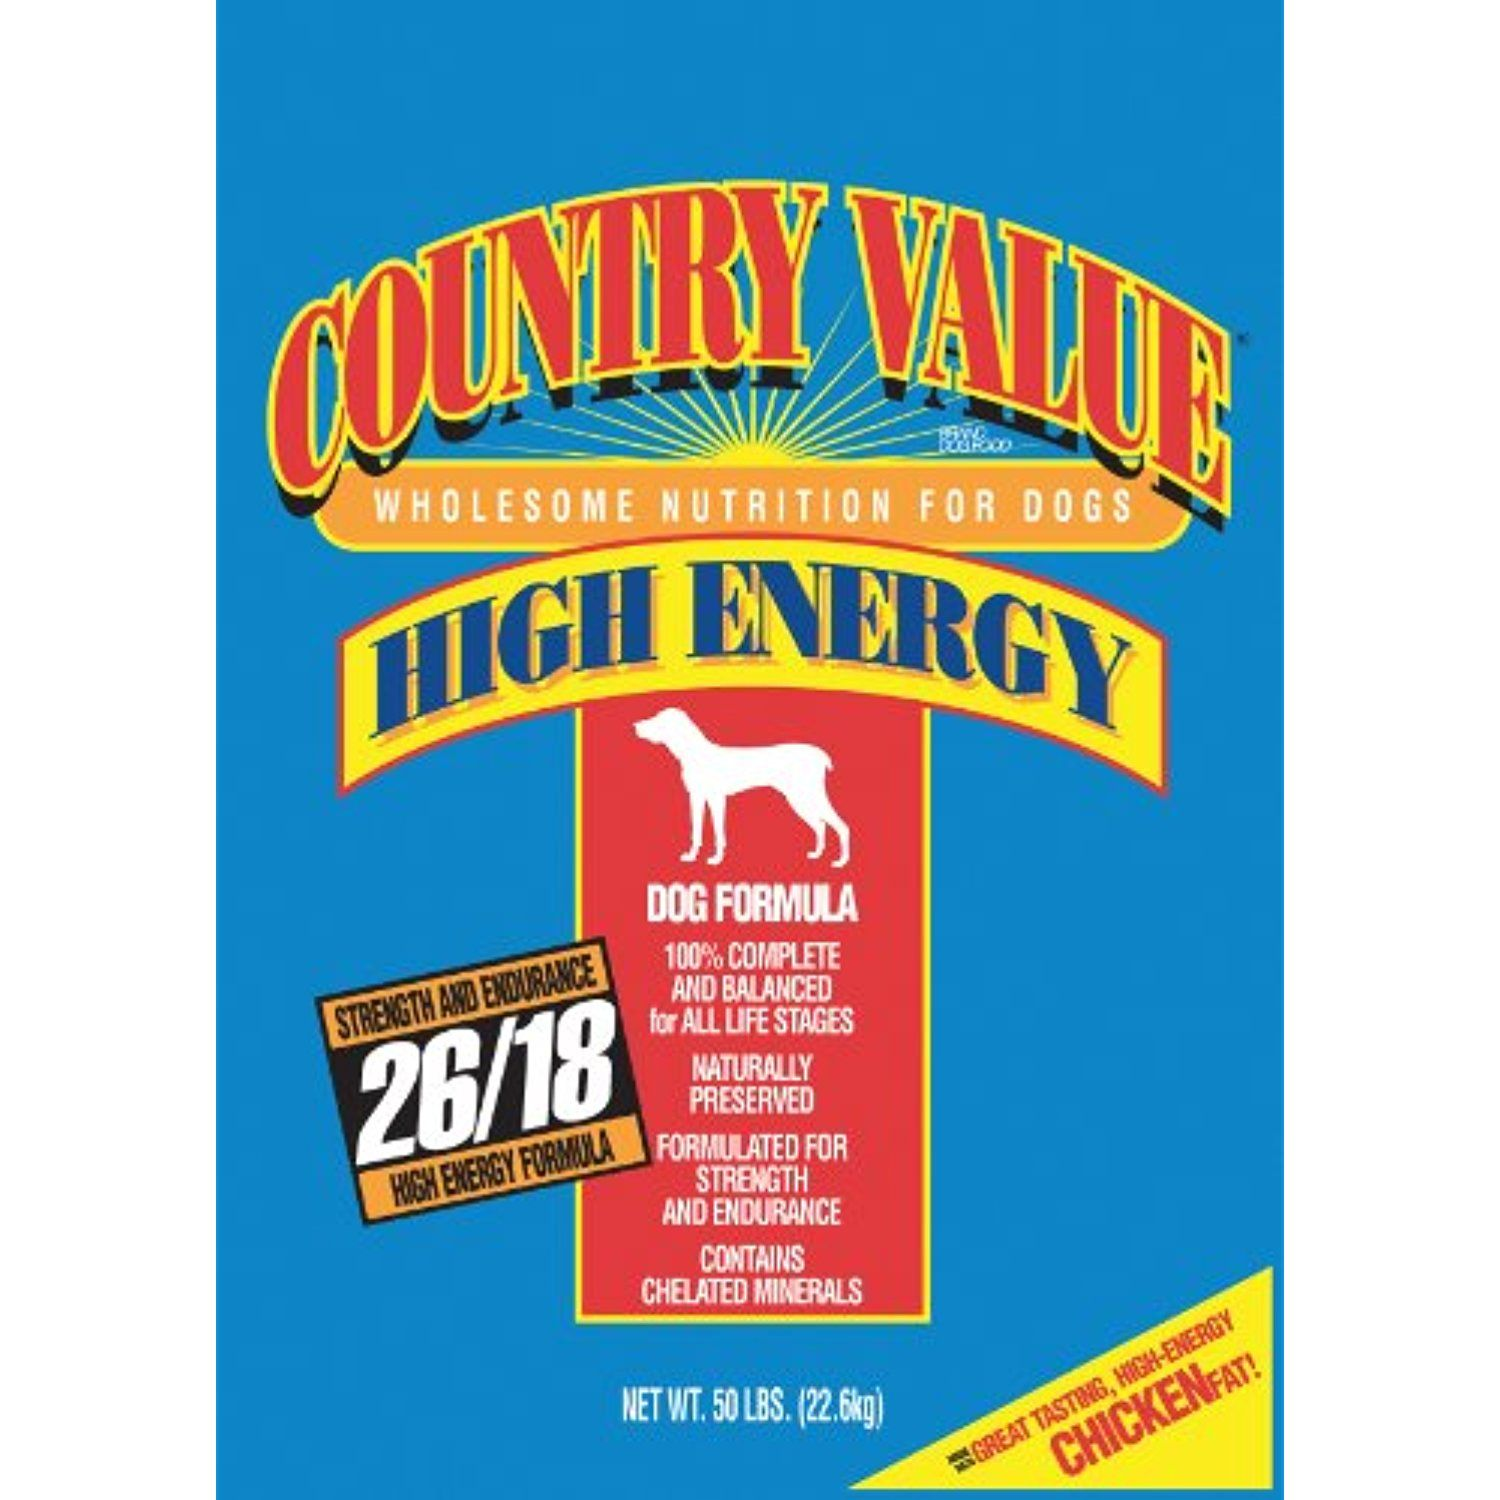 Country value dry food for adult dogs highenergy